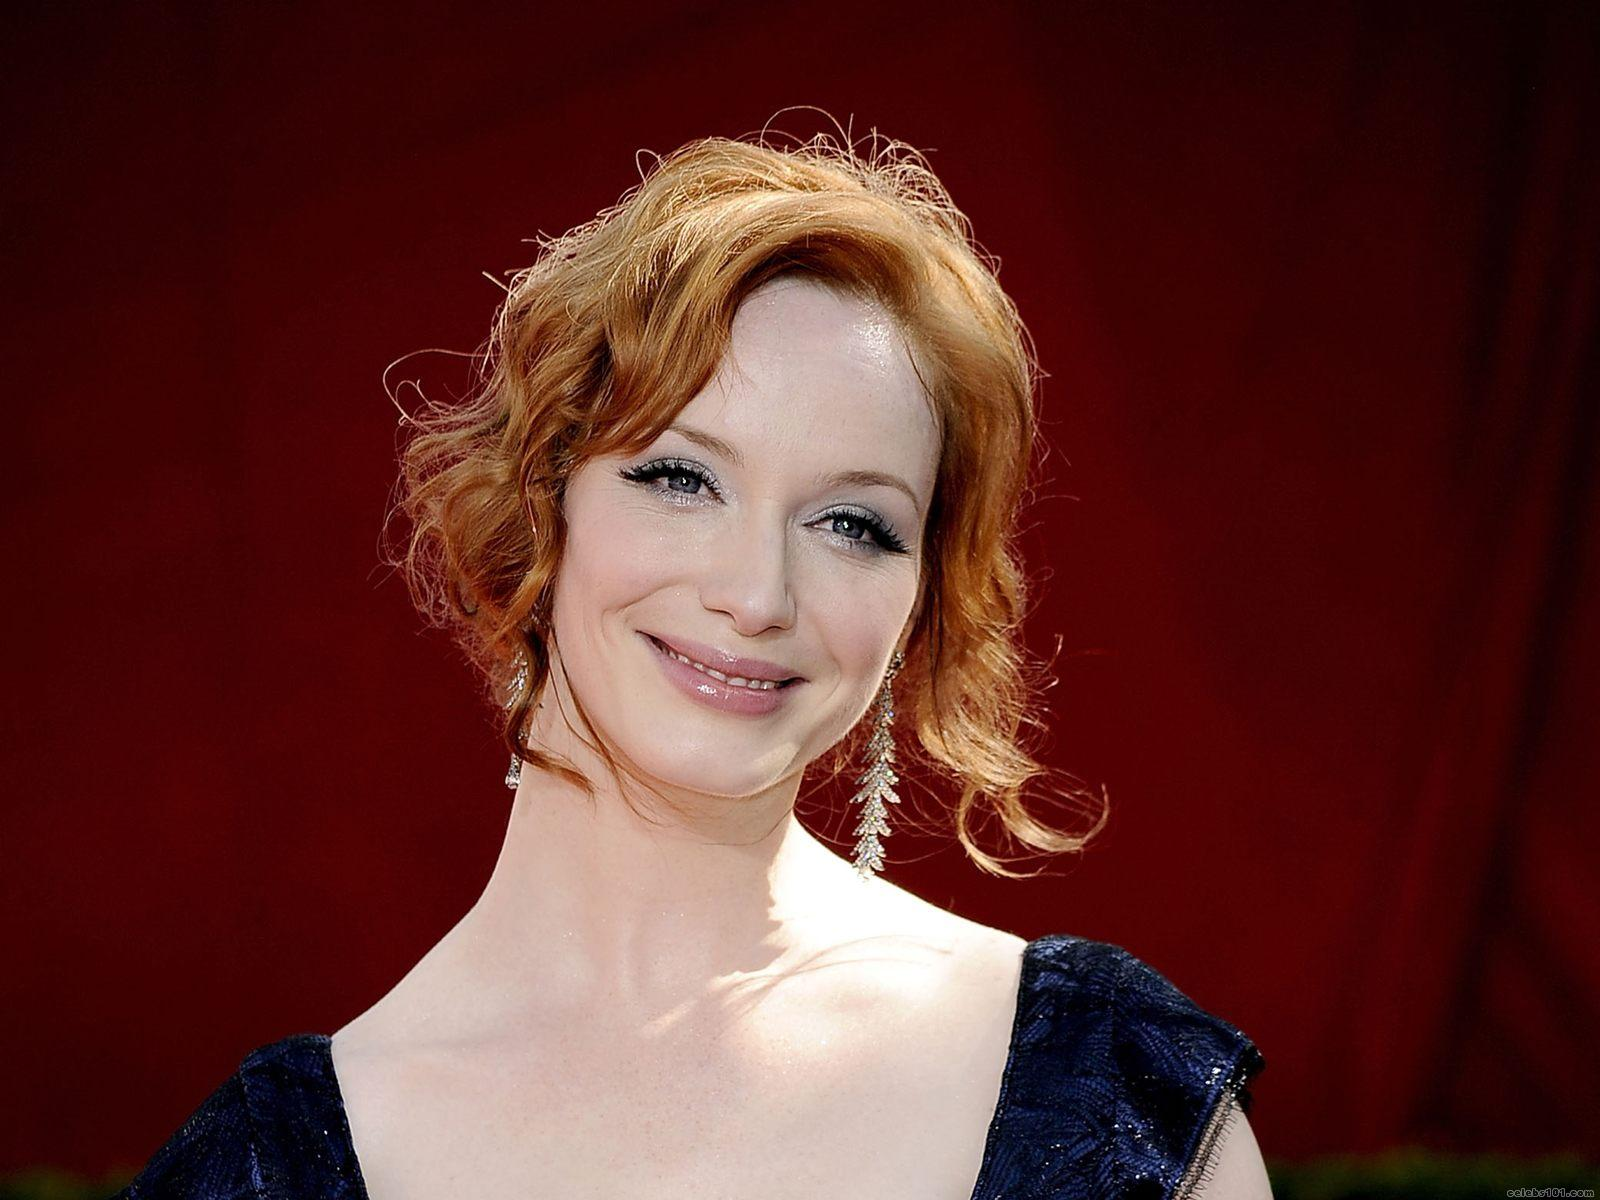 Christina Hendricks HD Wallpapers for desktop download 1600x1200